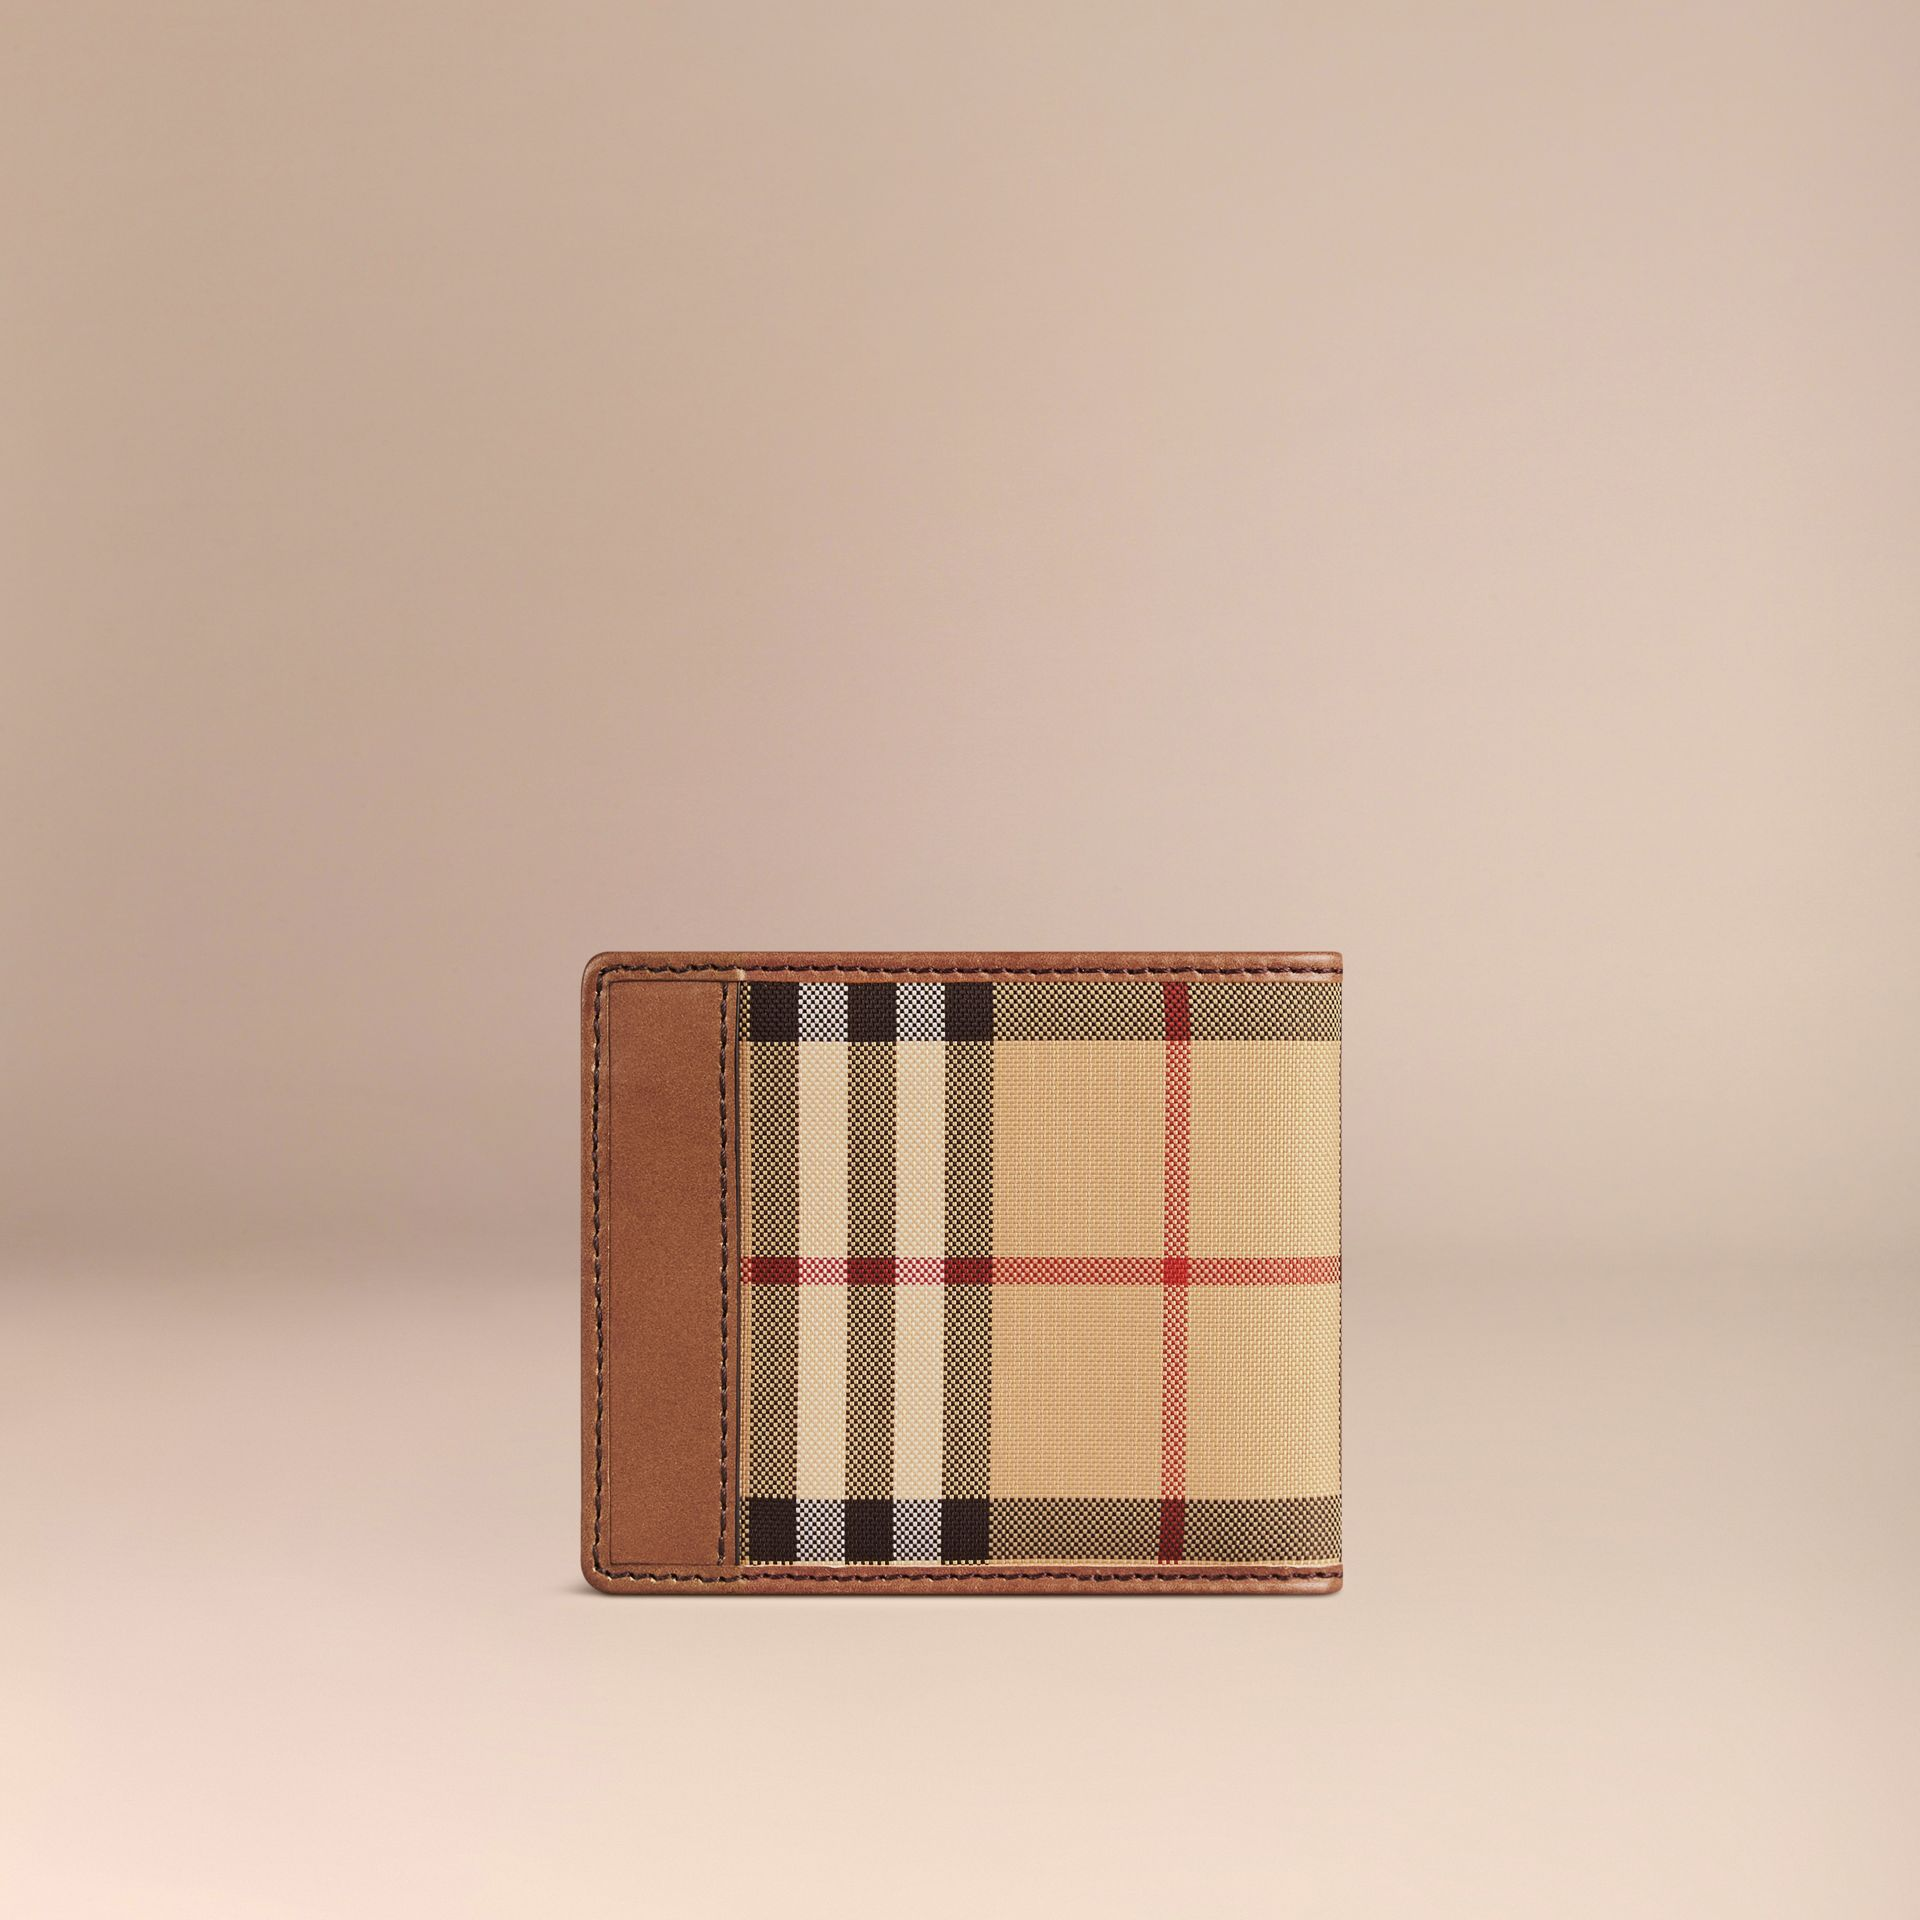 Horseferry Check ID Wallet in Tan - Men | Burberry - gallery image 3